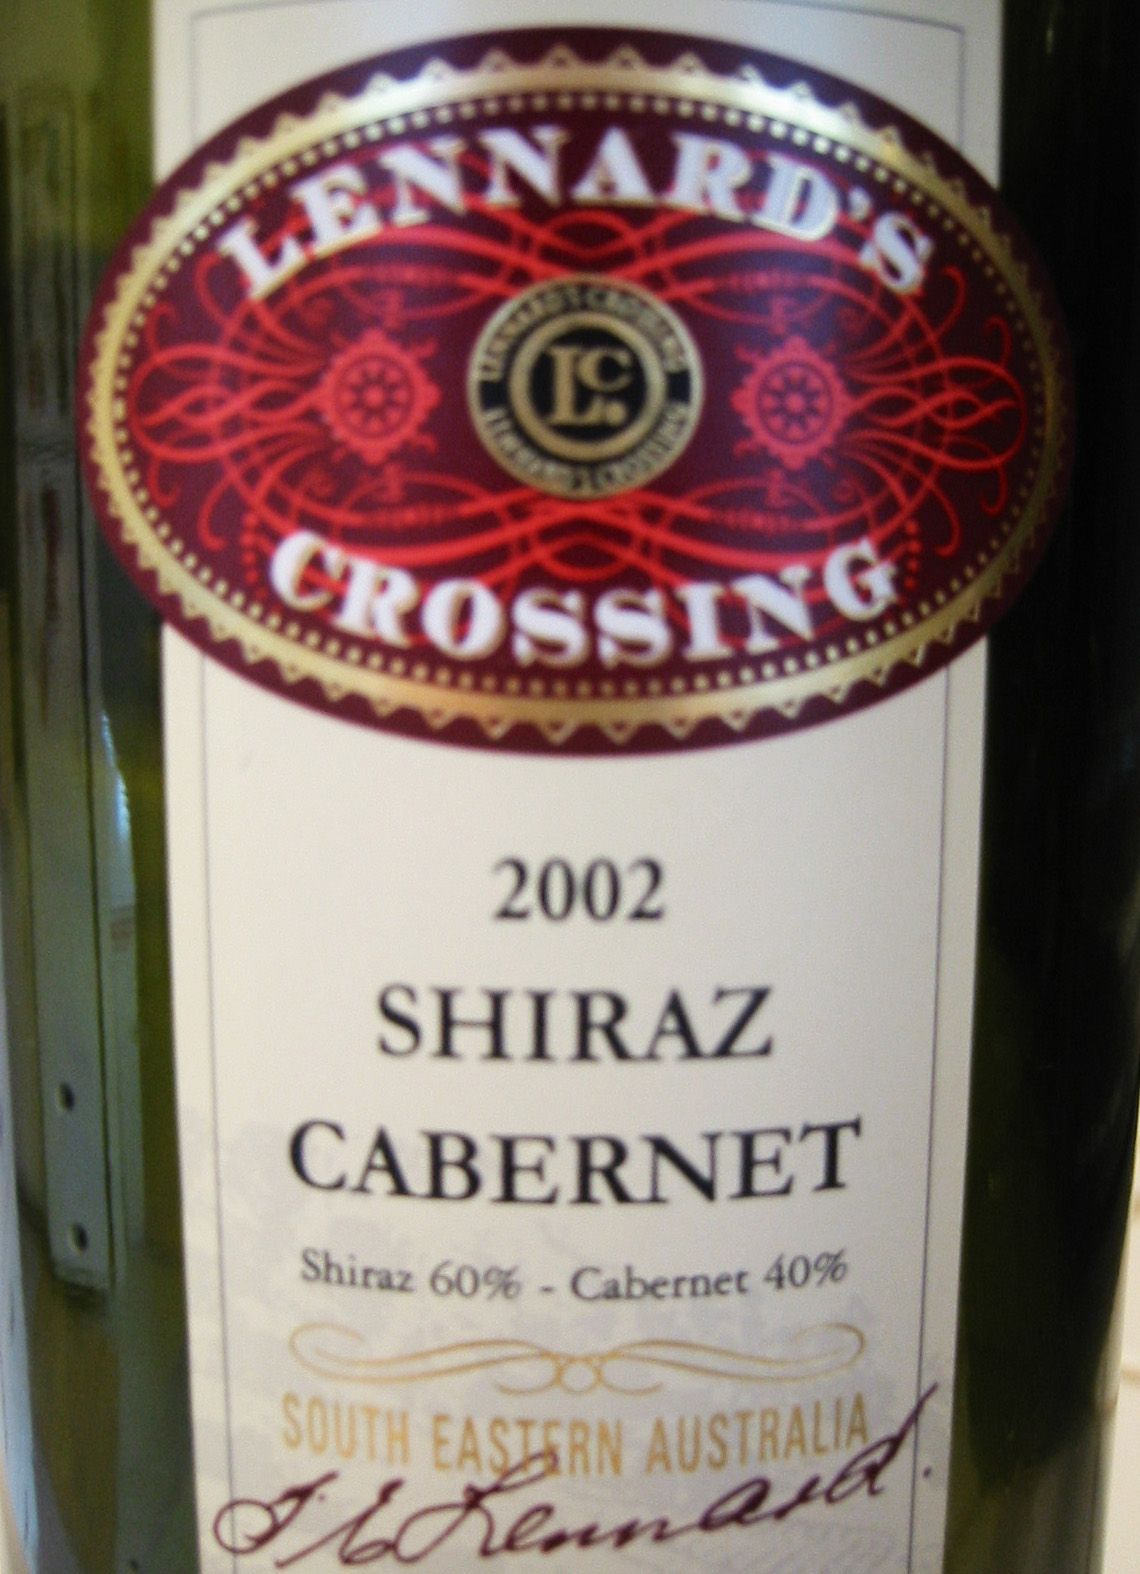 2002 Lennard S Crossing South Eastern Australia Shiraz Cabernet Cabernet Shiraz Australia